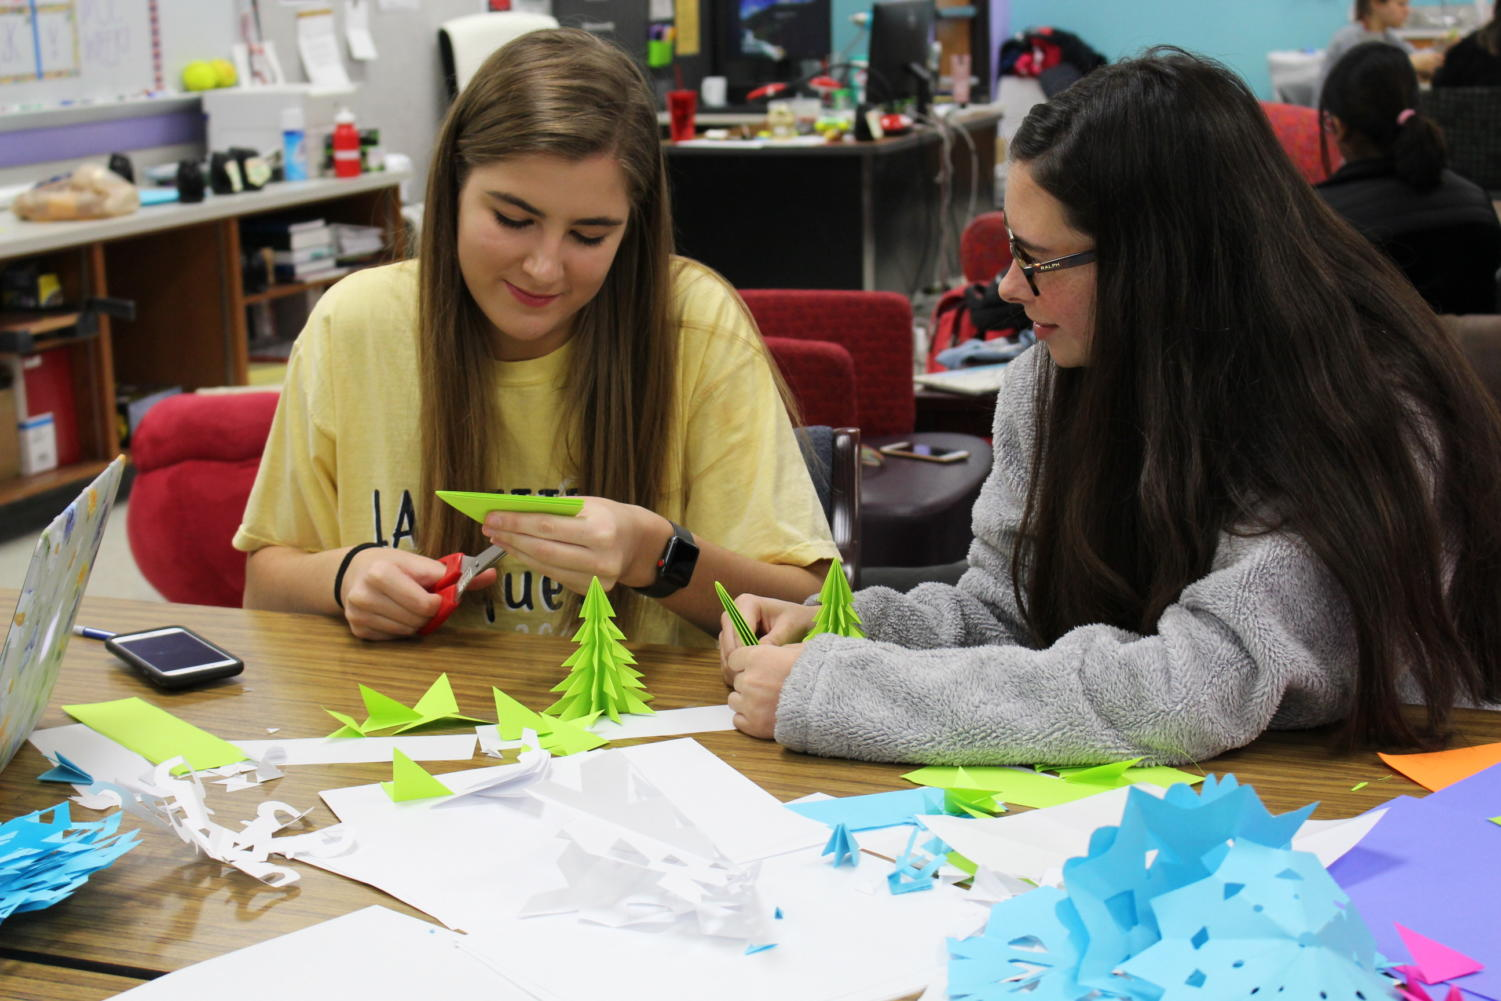 During seventh period, Coppell High School seniors Amanda Lasky and Kaitlyn Sork make Christmas trees for the centerpiece of the teacher luncheon. The Student Council teacher luncheon will be held on December 20 at 1:15pm in the Large Commons.